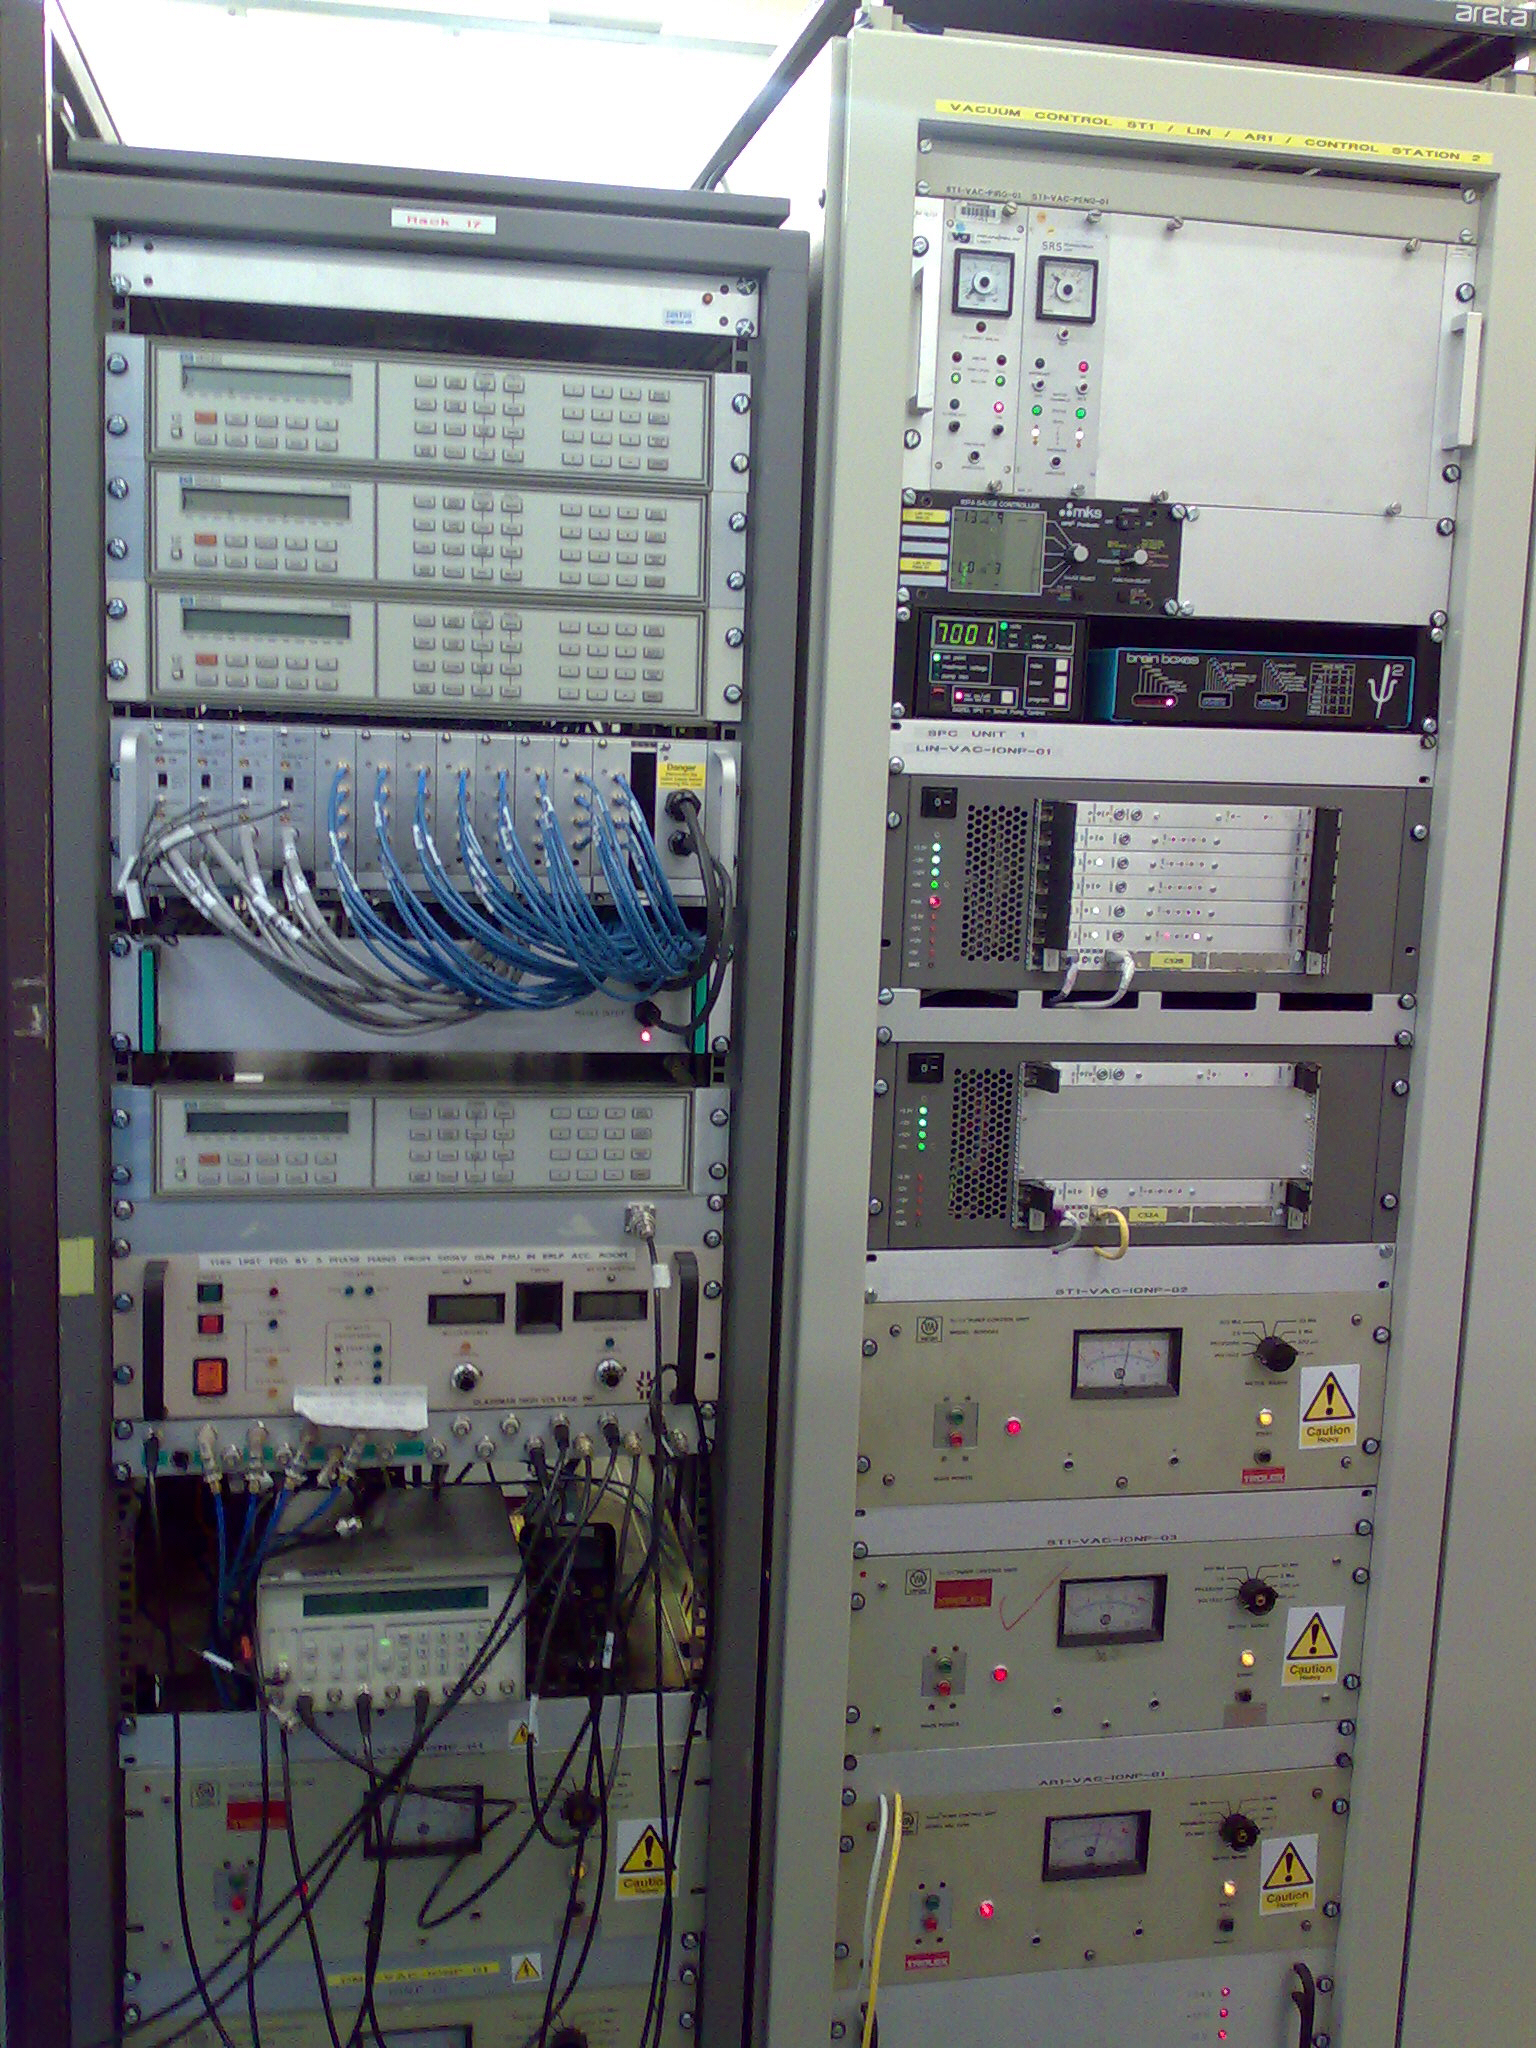 Astec Controls And Data Acquisition System Wiring Diagram Control Psu Equipment Racks